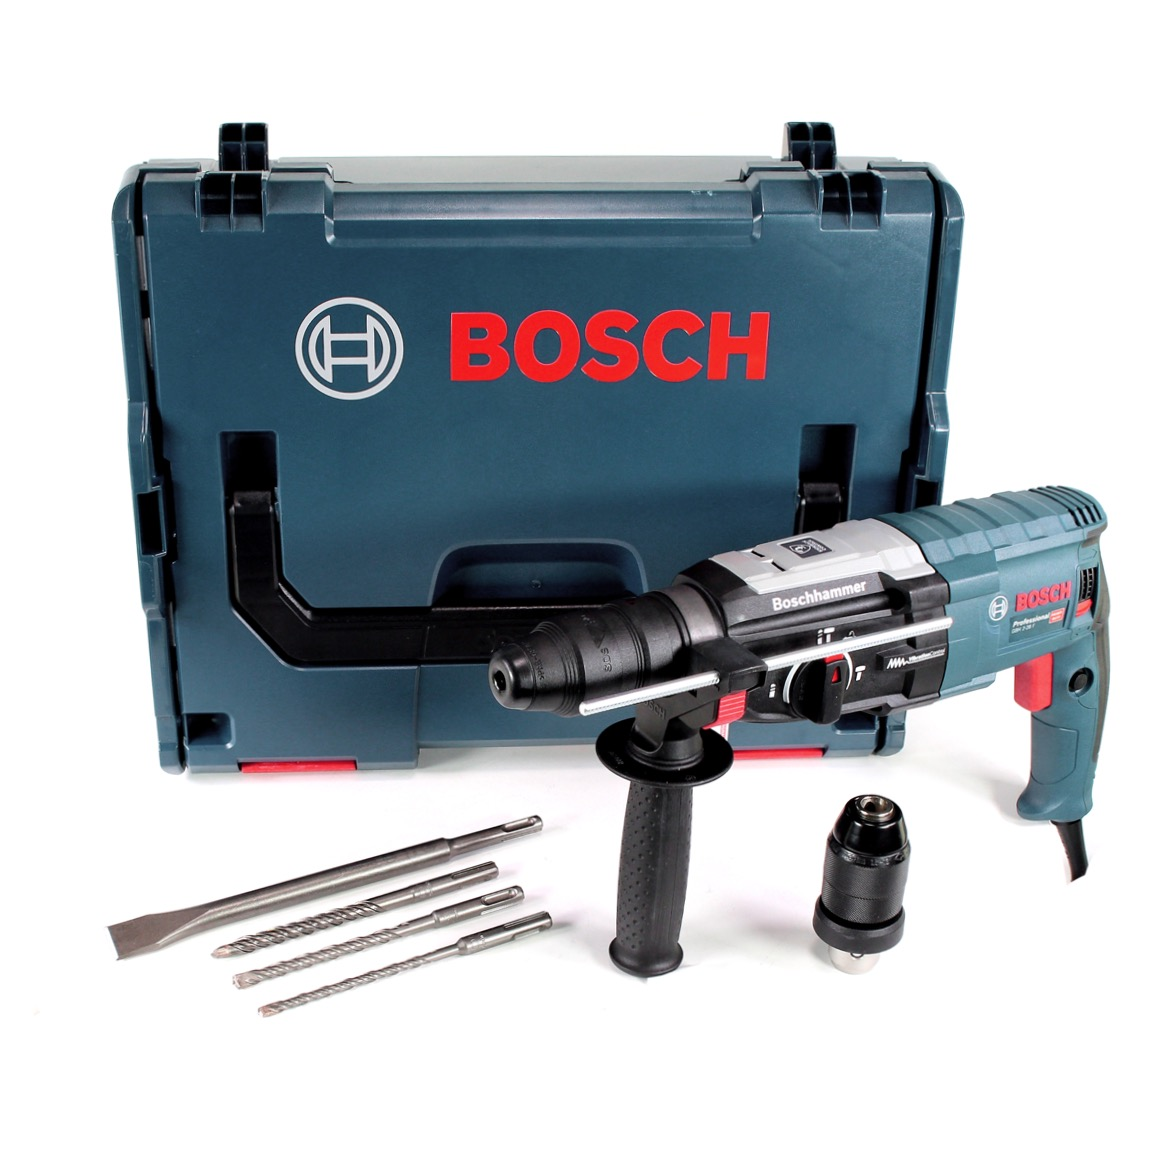 bosch bohrhammer gbh 2 28 f sds plus in l boxx bohrfutter mei el bohrer ebay. Black Bedroom Furniture Sets. Home Design Ideas